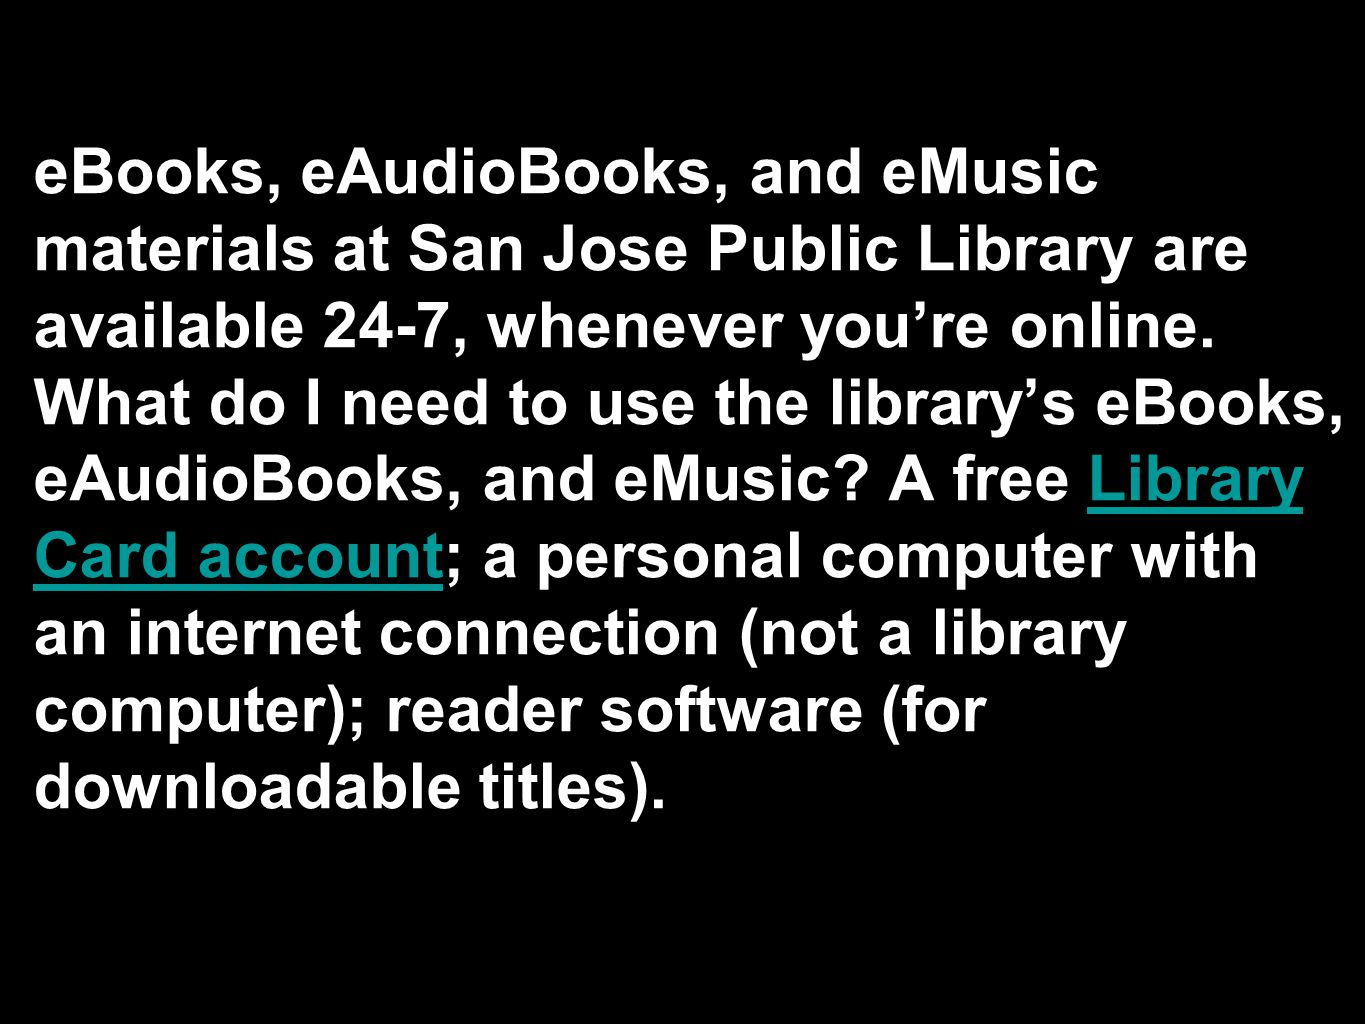 eBooks, eAudioBooks, and eMusic materials at San Jose Public Library are available 24-7, whenever you're online.